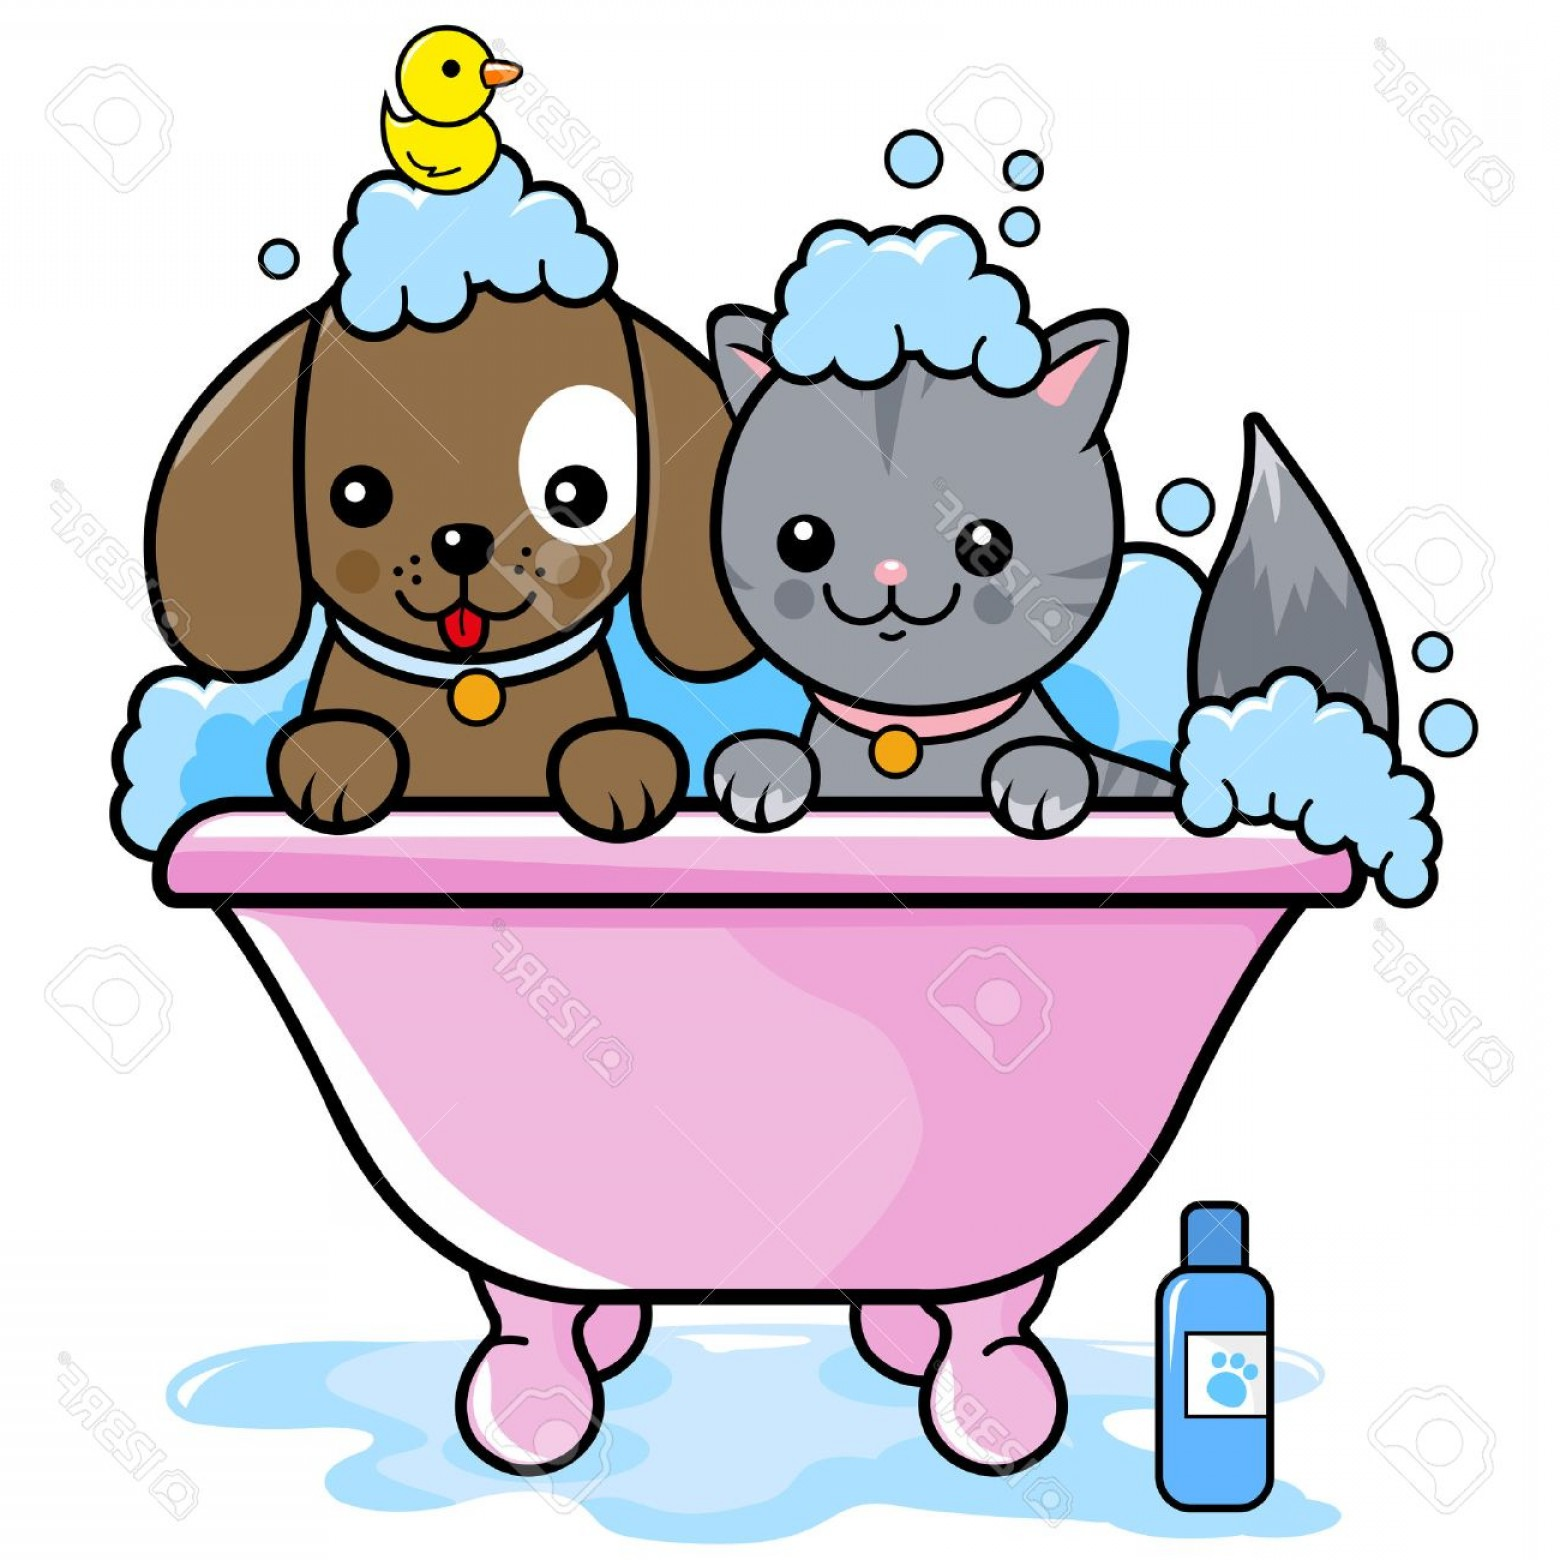 Dog Bubble Bath Vector: Lovely Photostock Vector Dog And A Cat In A Tub Taking A Bubble Bath